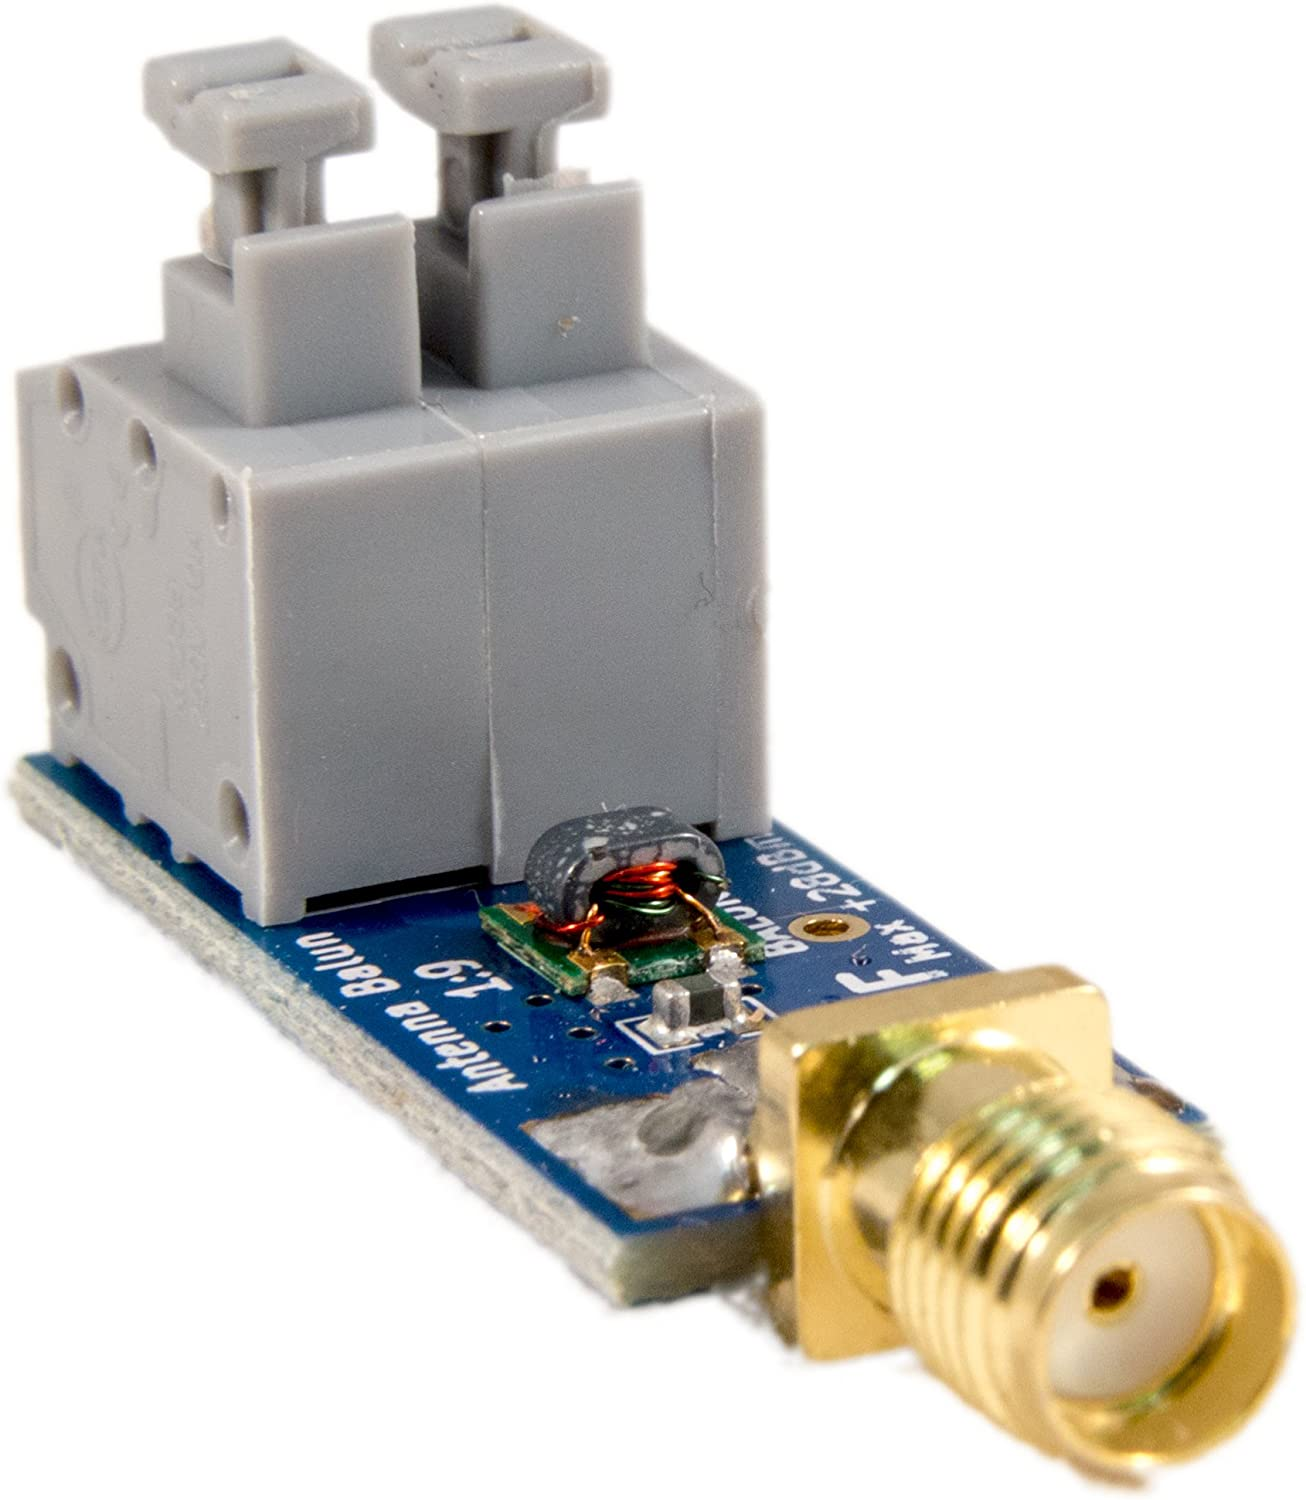 NooElec /'Balun One Nine/' Tiny Low-Cost  9:1 Balun; Long Wire HF Antenna RTL-SDR